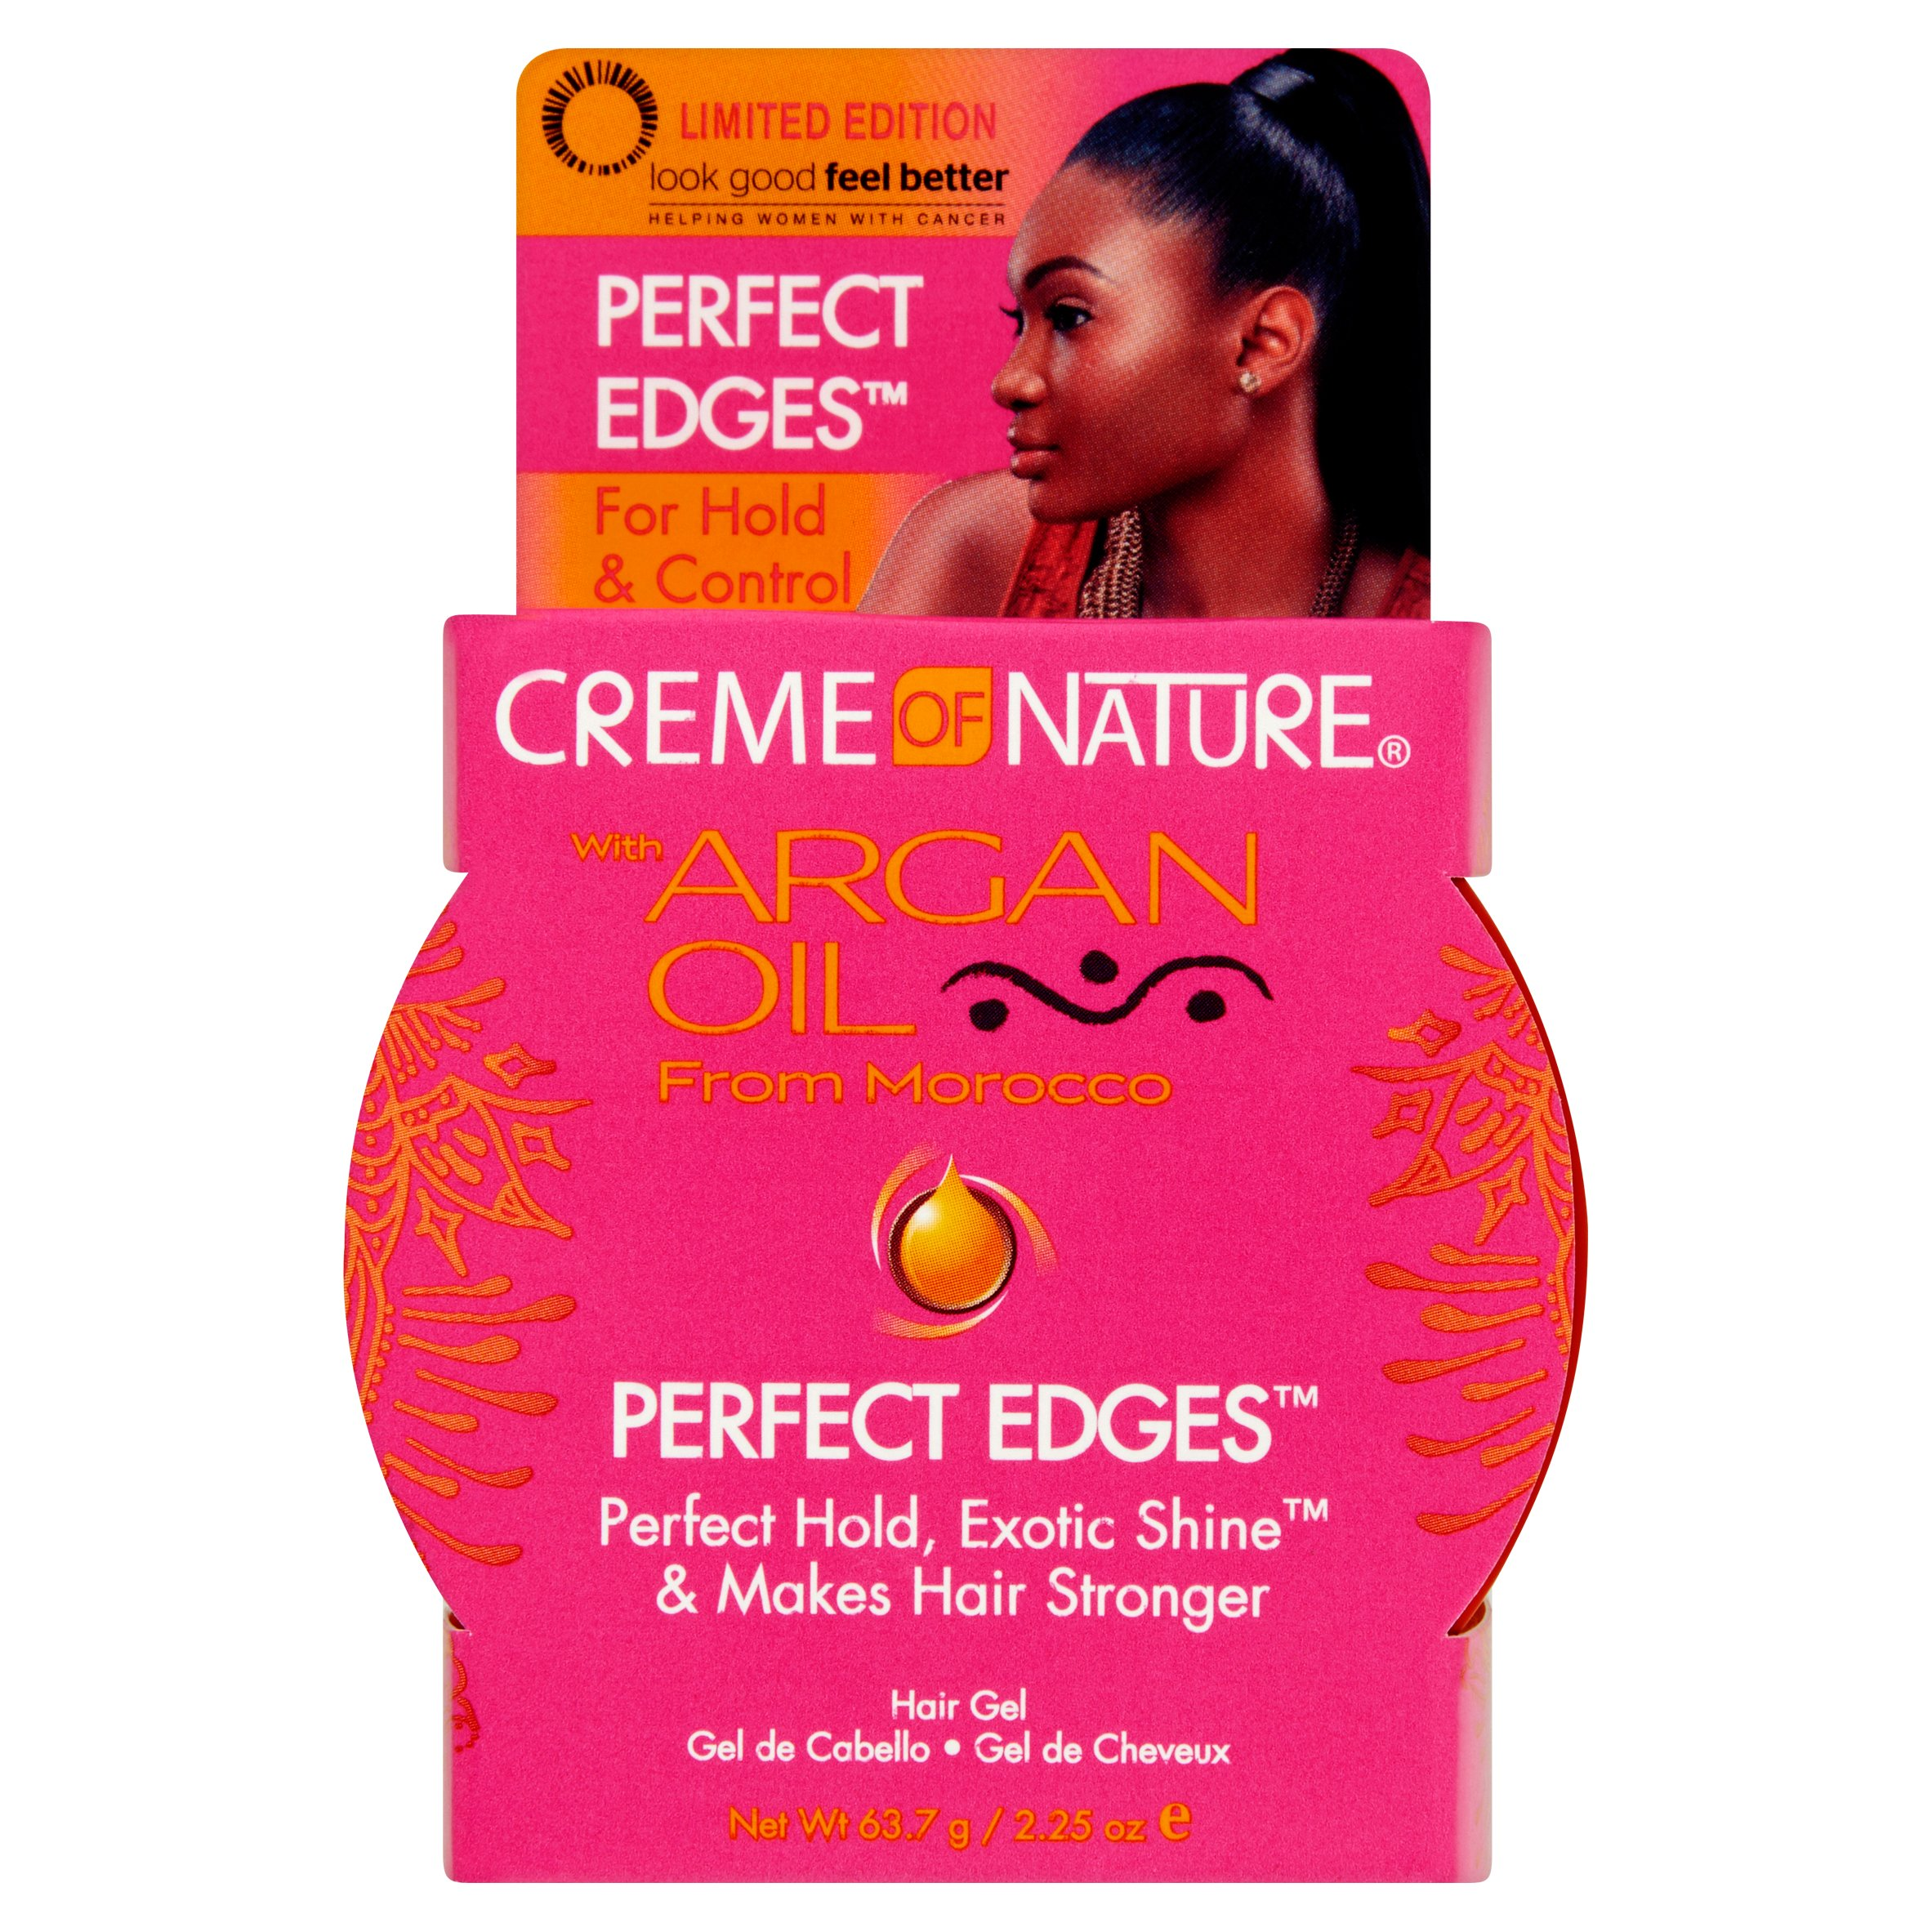 Creme of Nature Limited Edition Perfect Edges Hair Gel with Argan Oil from Morocco, 2.25 oz